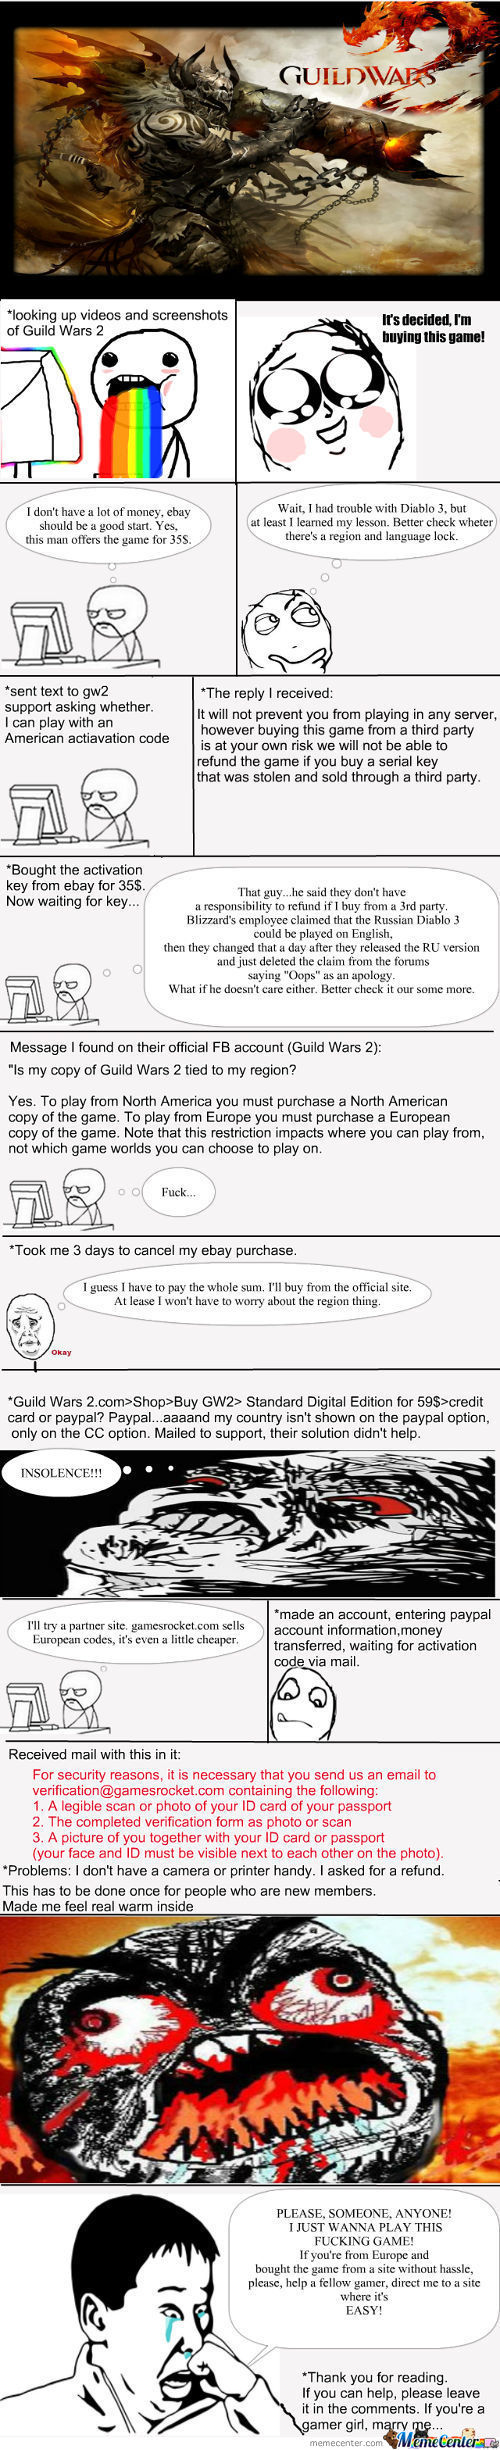 My Experience Trying To Buy Gw2, Help!